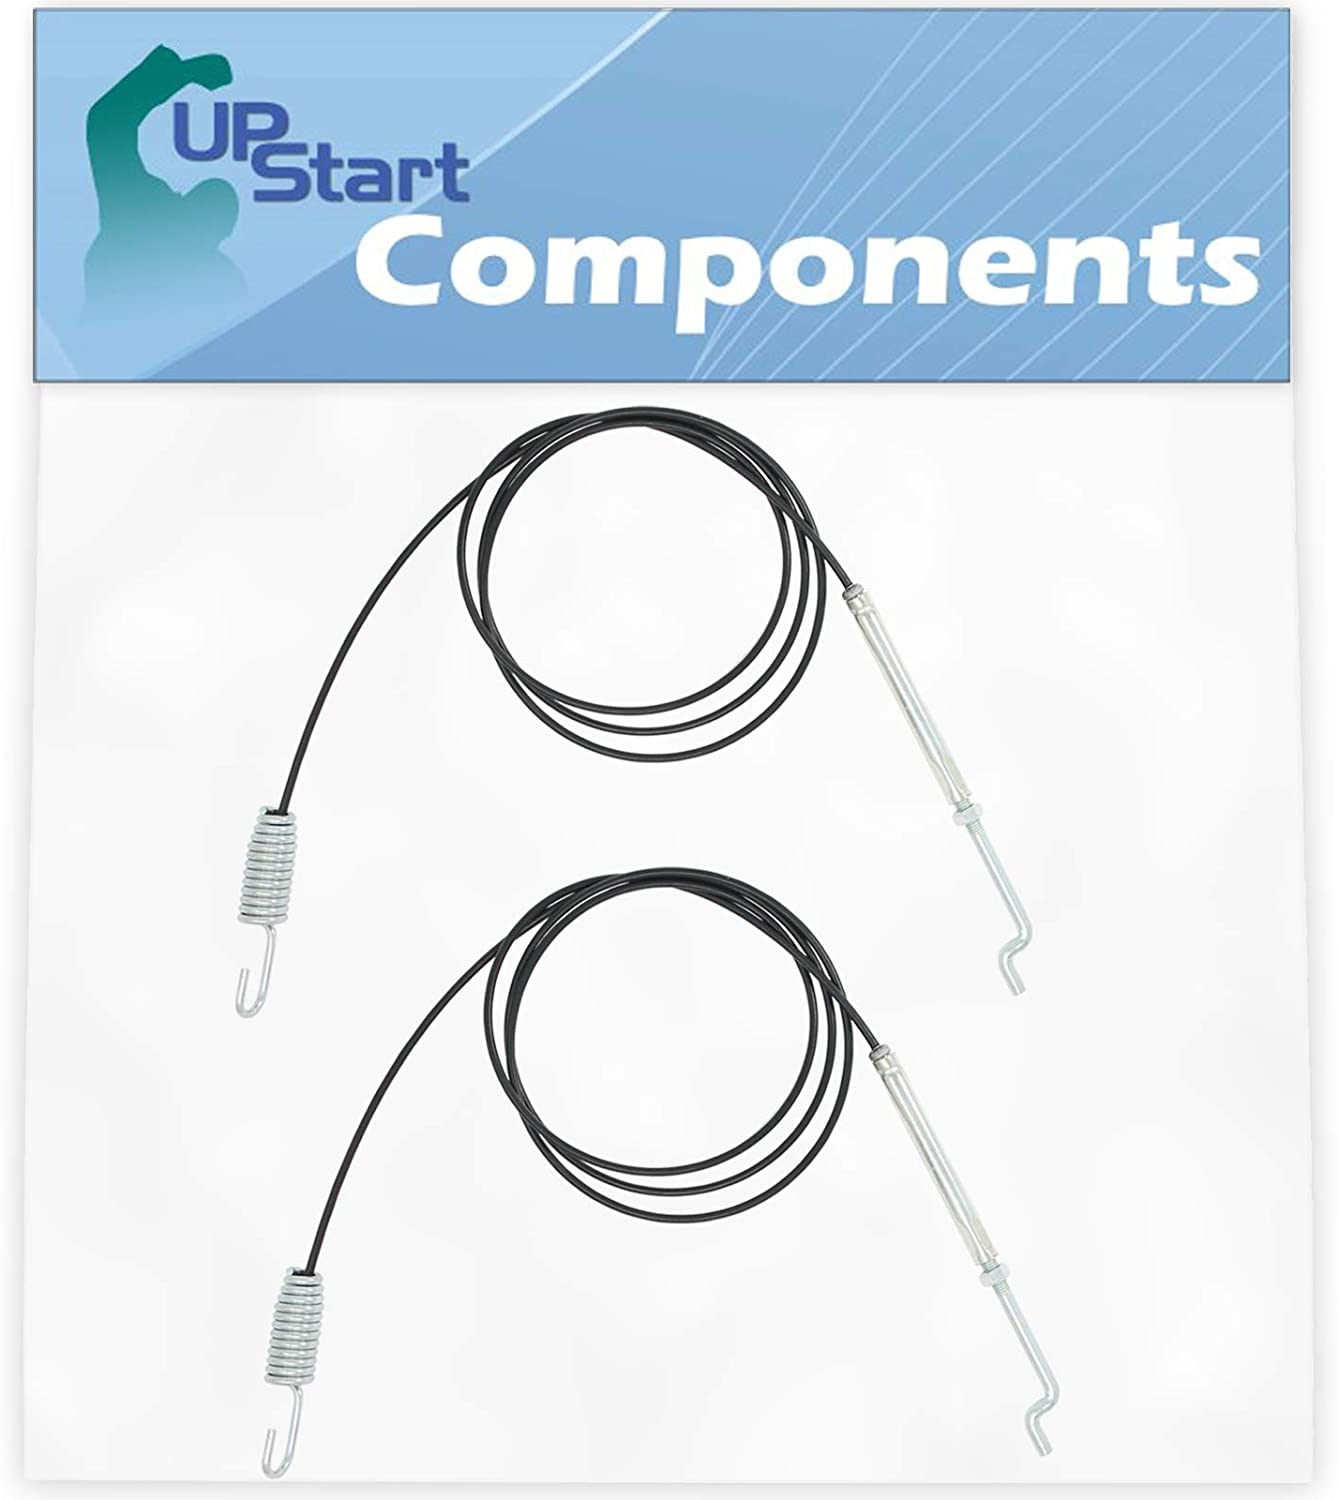 UpStart Components 2-Pack 746-0897 Auger Clutch Cable Replacement for Yard Man 316E753F401 (1996) Snowblower - Compatible with 946-0897 Auger Cable